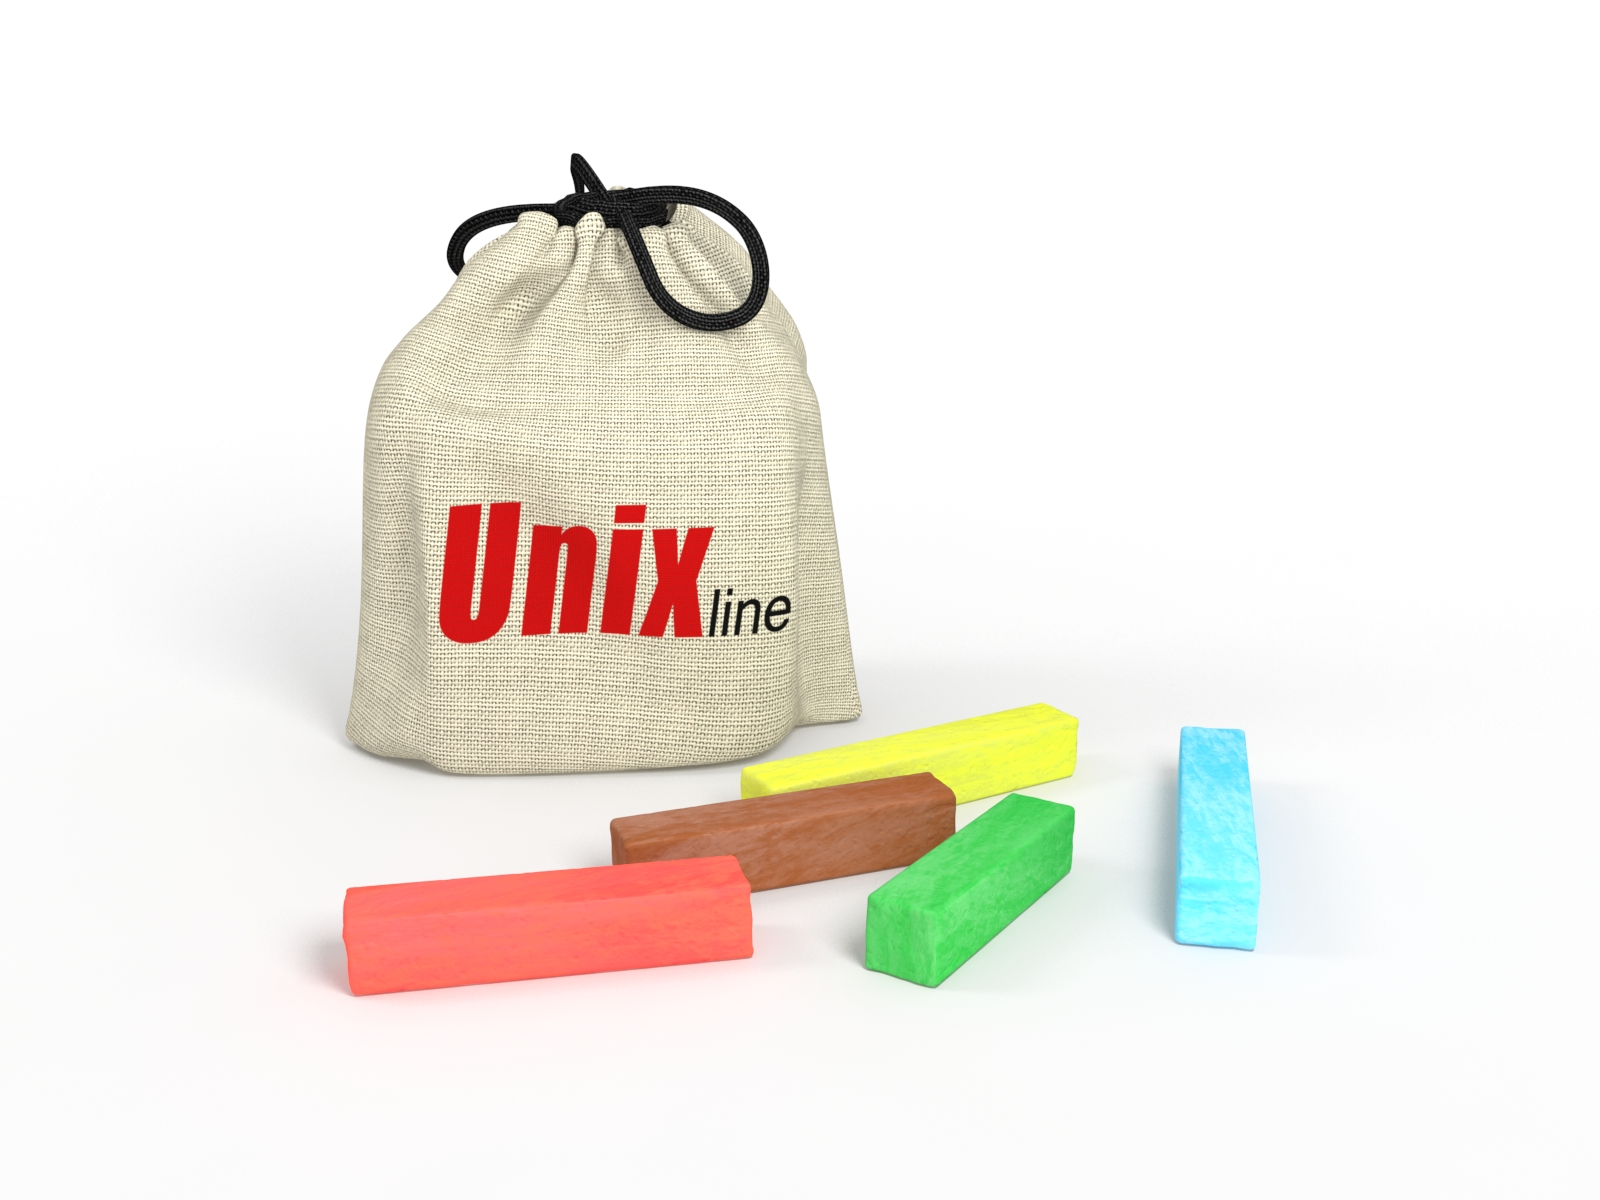 Батут UNIX line SUPREME GAME 8 ft (blue)